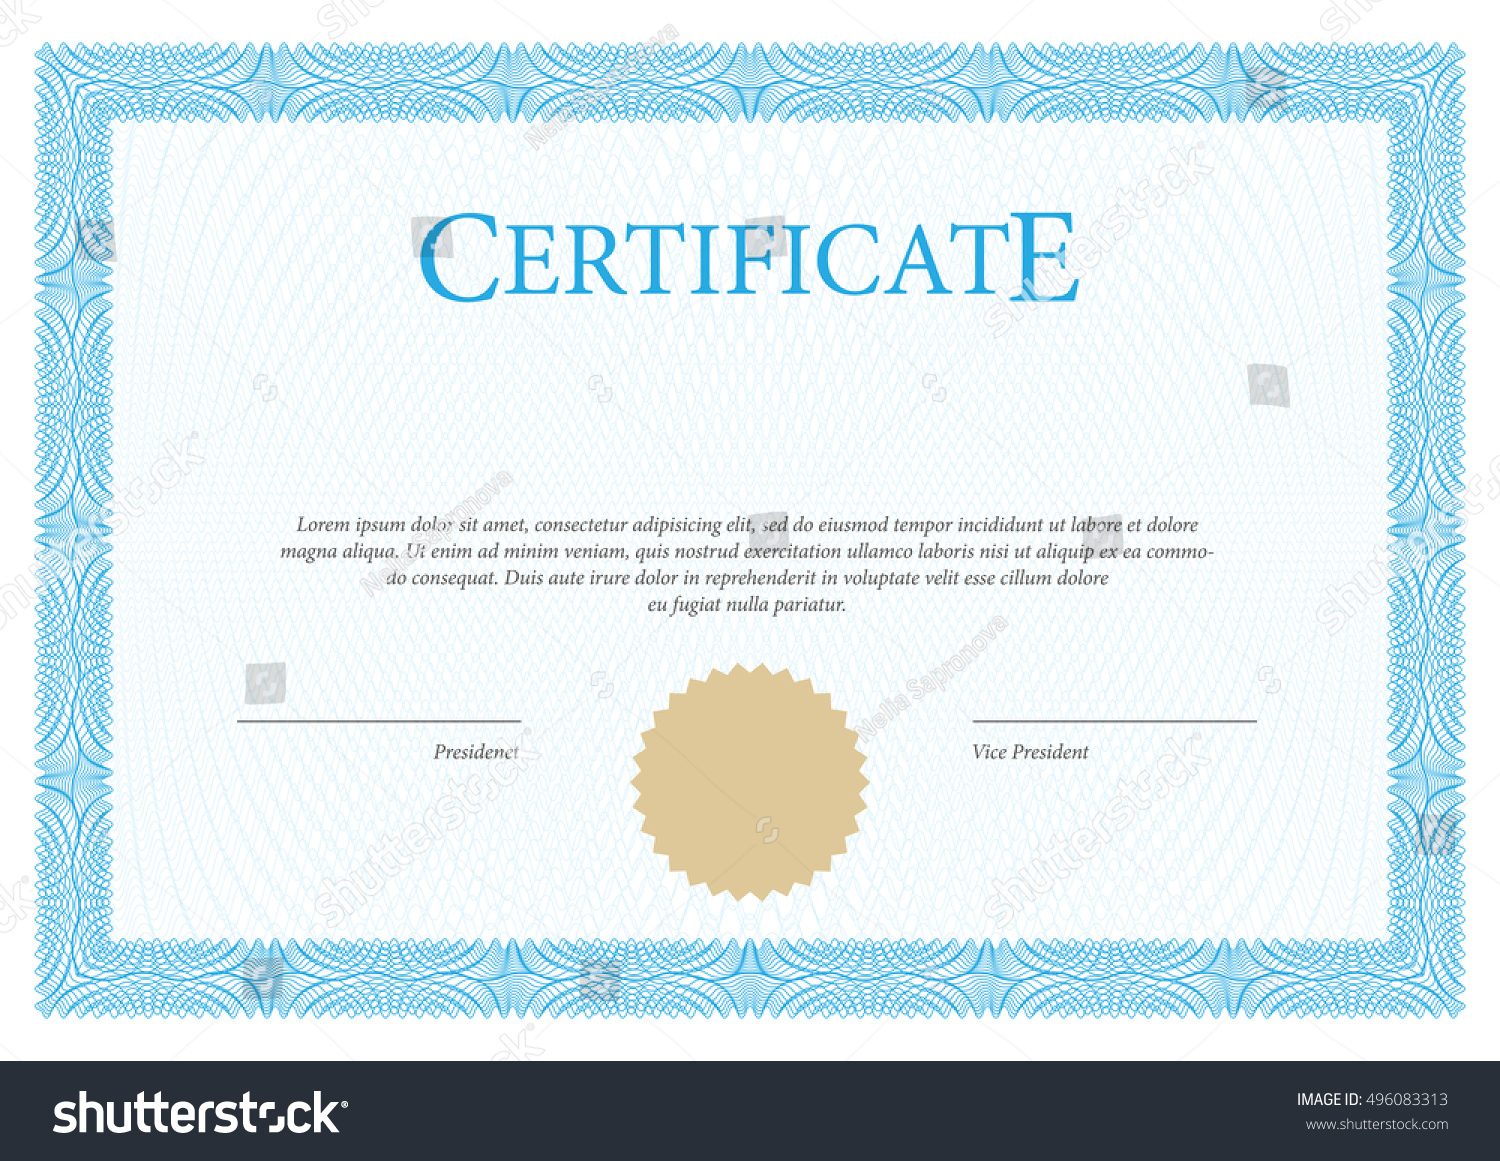 Certificate vector template diplomas currency award stock vector certificate vector template diplomas currency award background gift voucher 1betcityfo Gallery